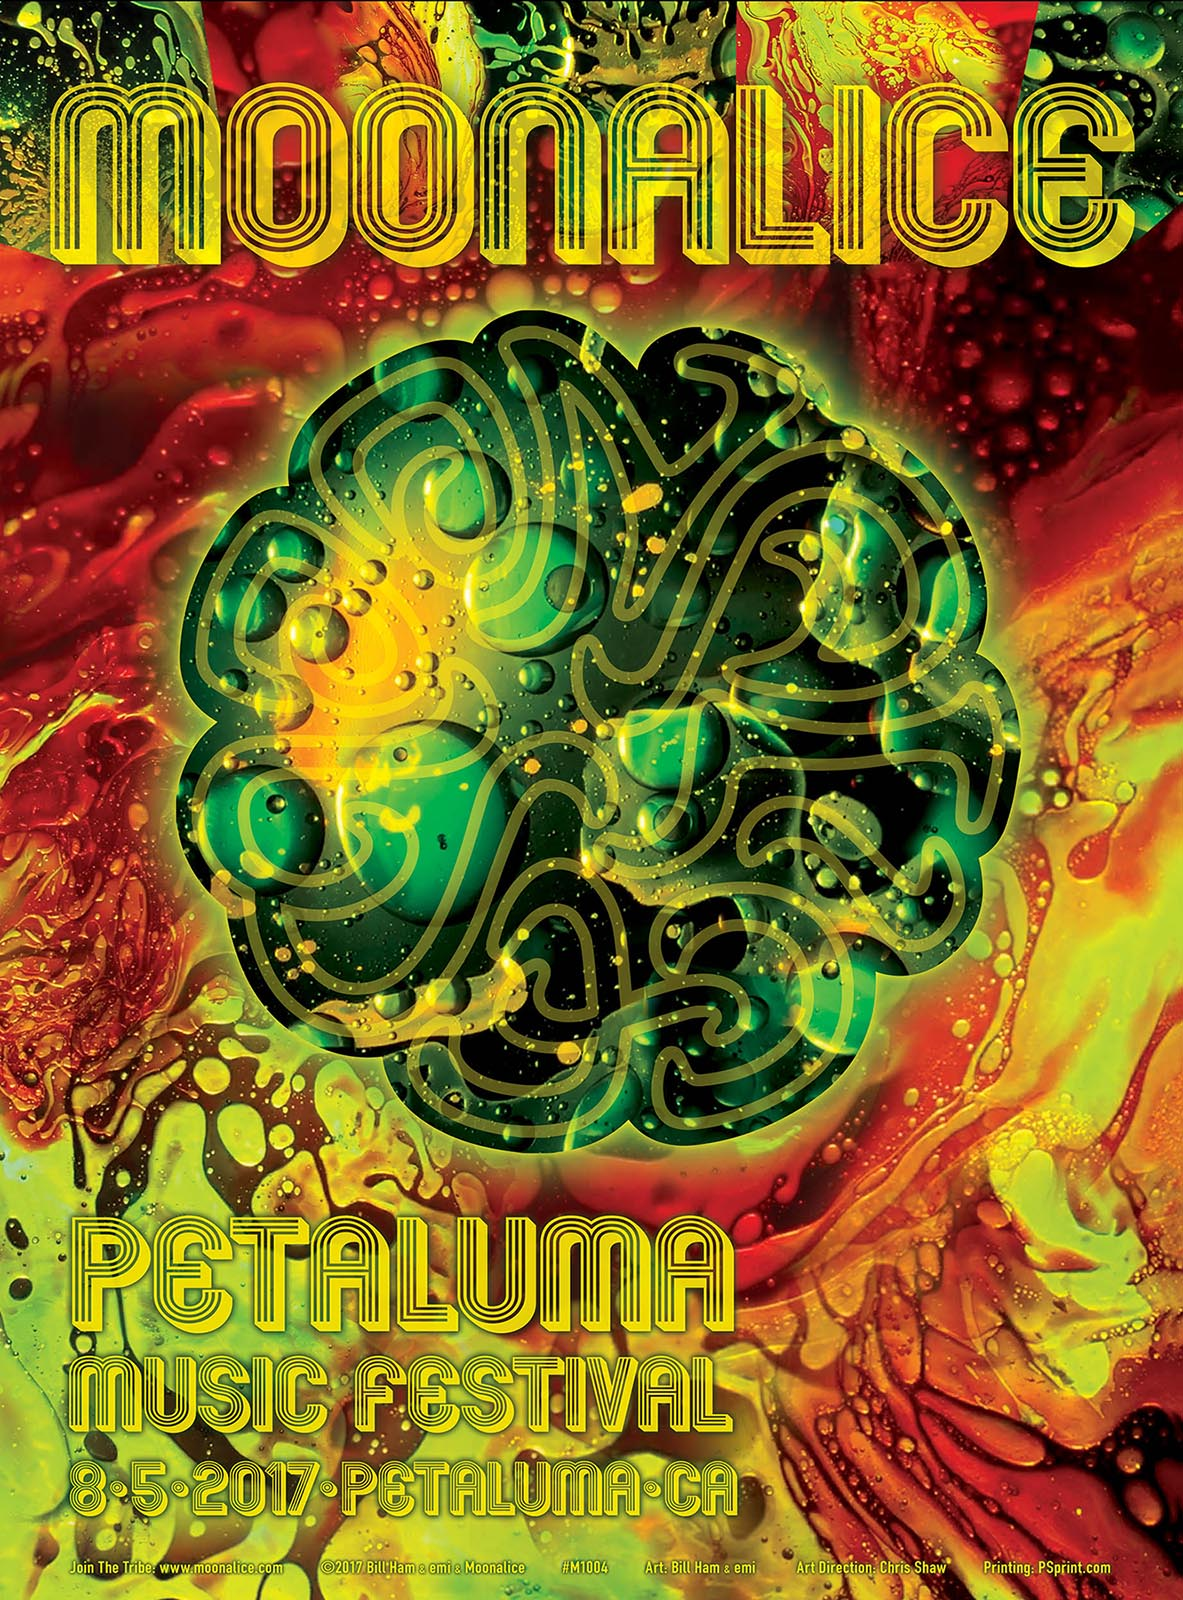 Moonalice Poster for Petaluma Music Festival 2017